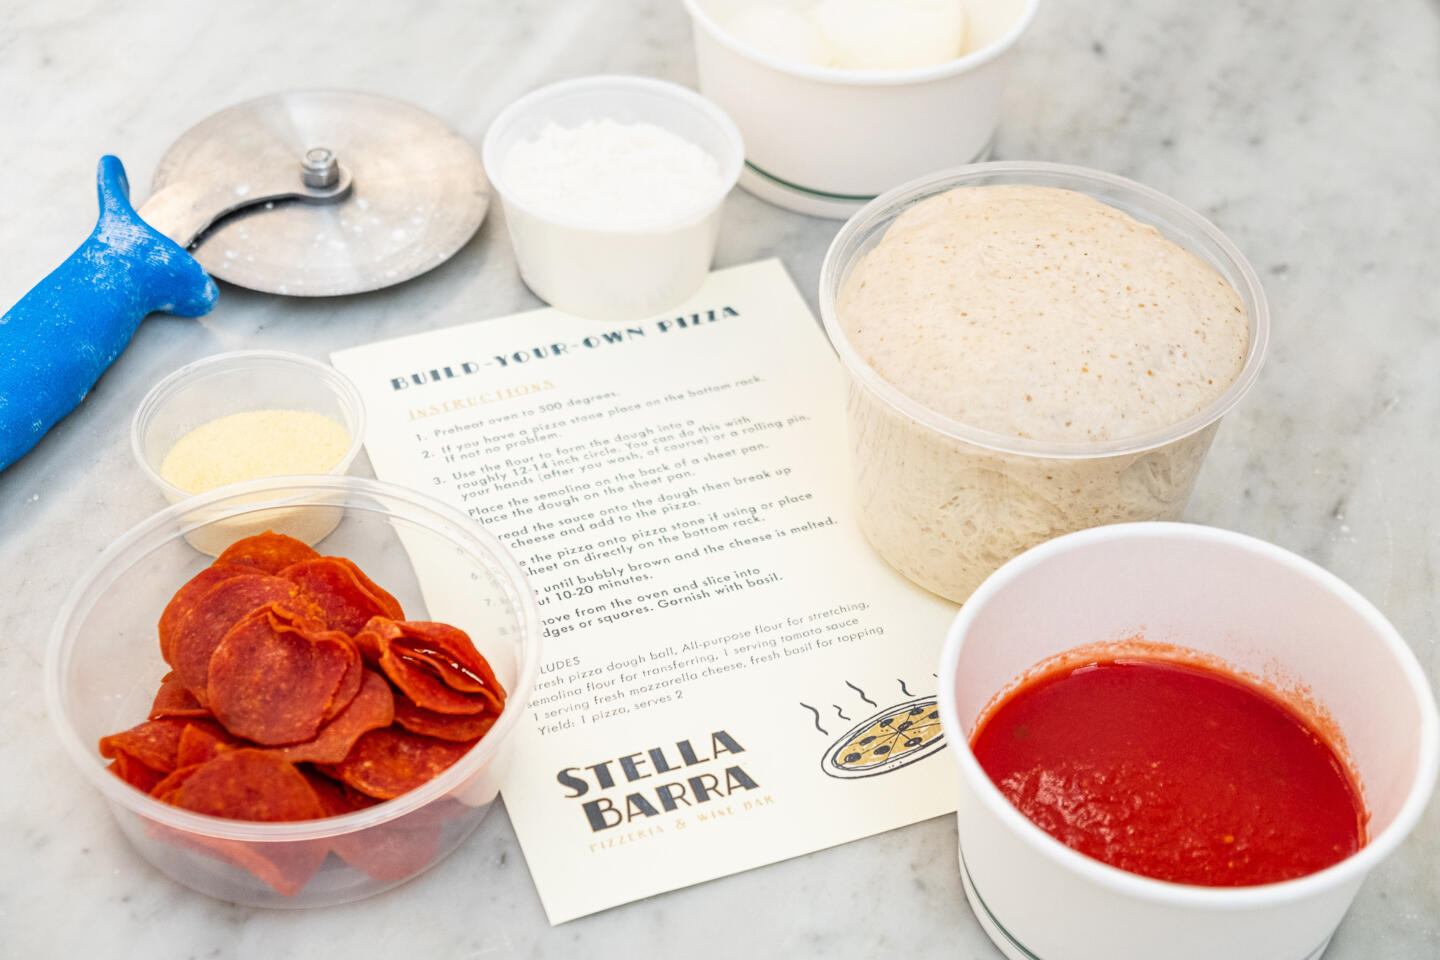 Stella Barra Pizza Kit